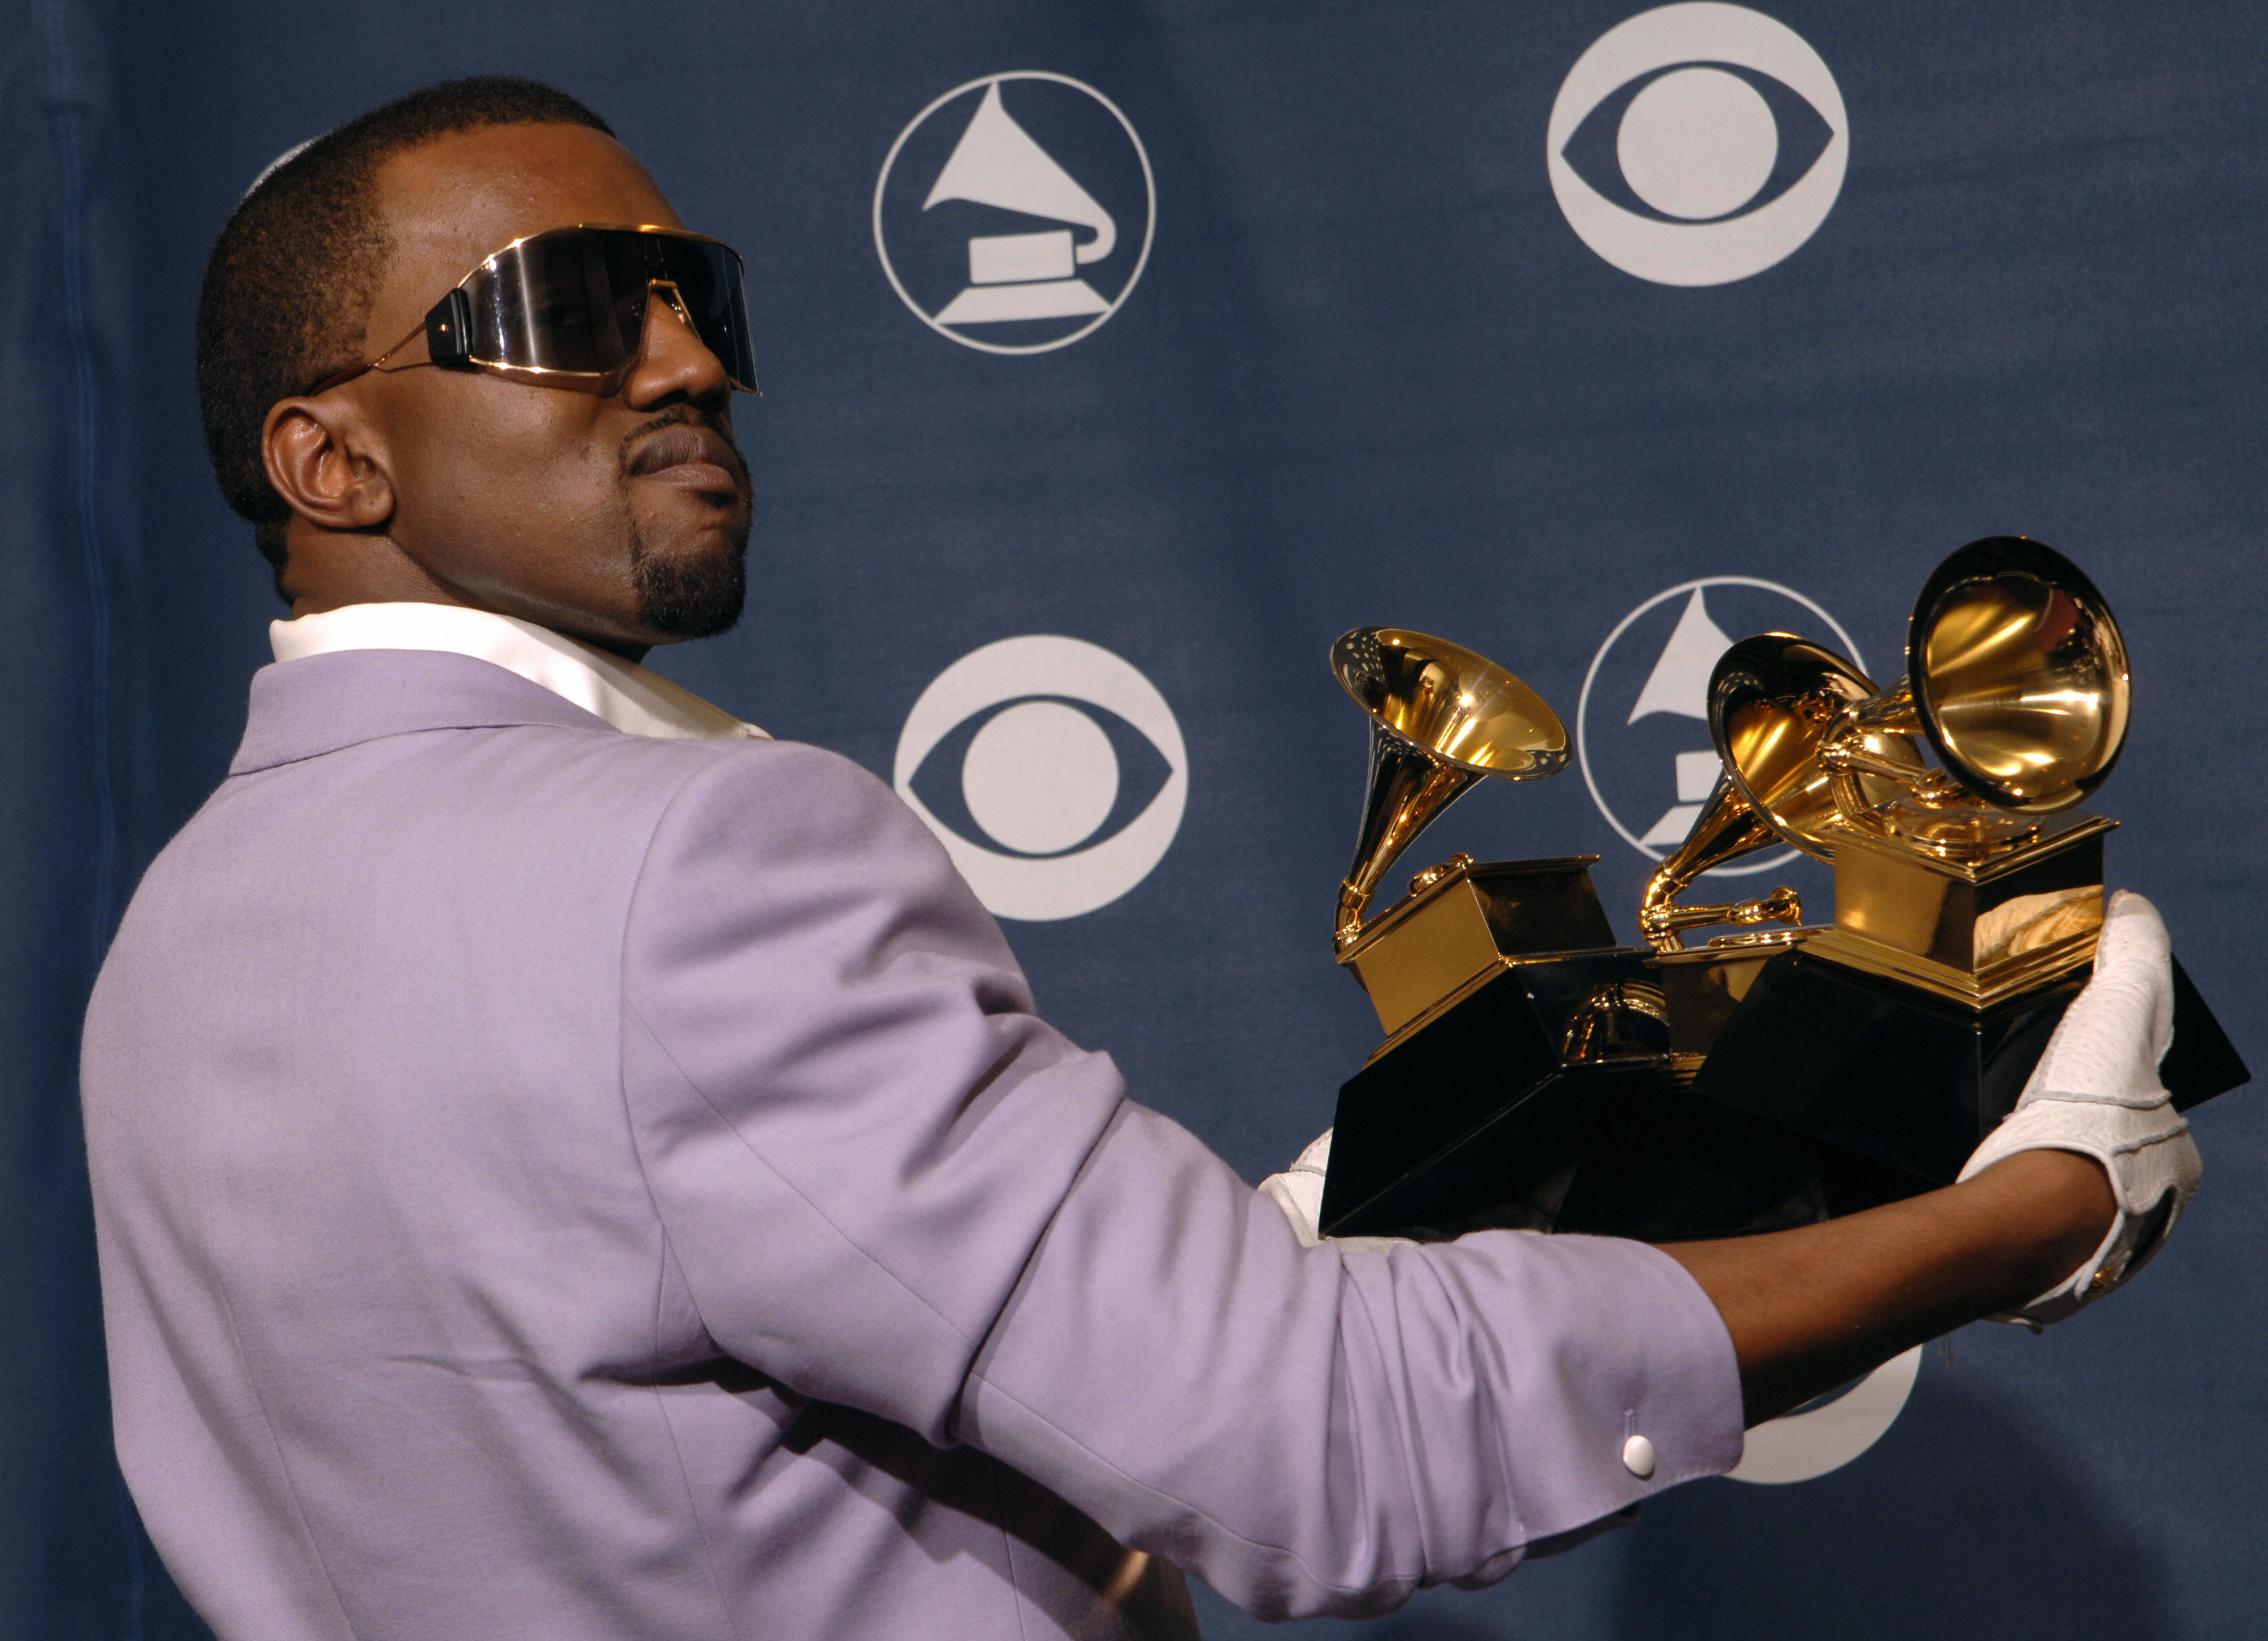 Los Angeles, UNITED STATES: US rapper Kanye West poses with the three awards he won at the Grammy Awards in Los Angeles 08 February 2006. West won for best rap solo performance, best rap song and best rap album. AFP PHOTO/Susan GOLDMAN (Photo credit should read SUSAN GOLDMAN/AFP/Getty Images)